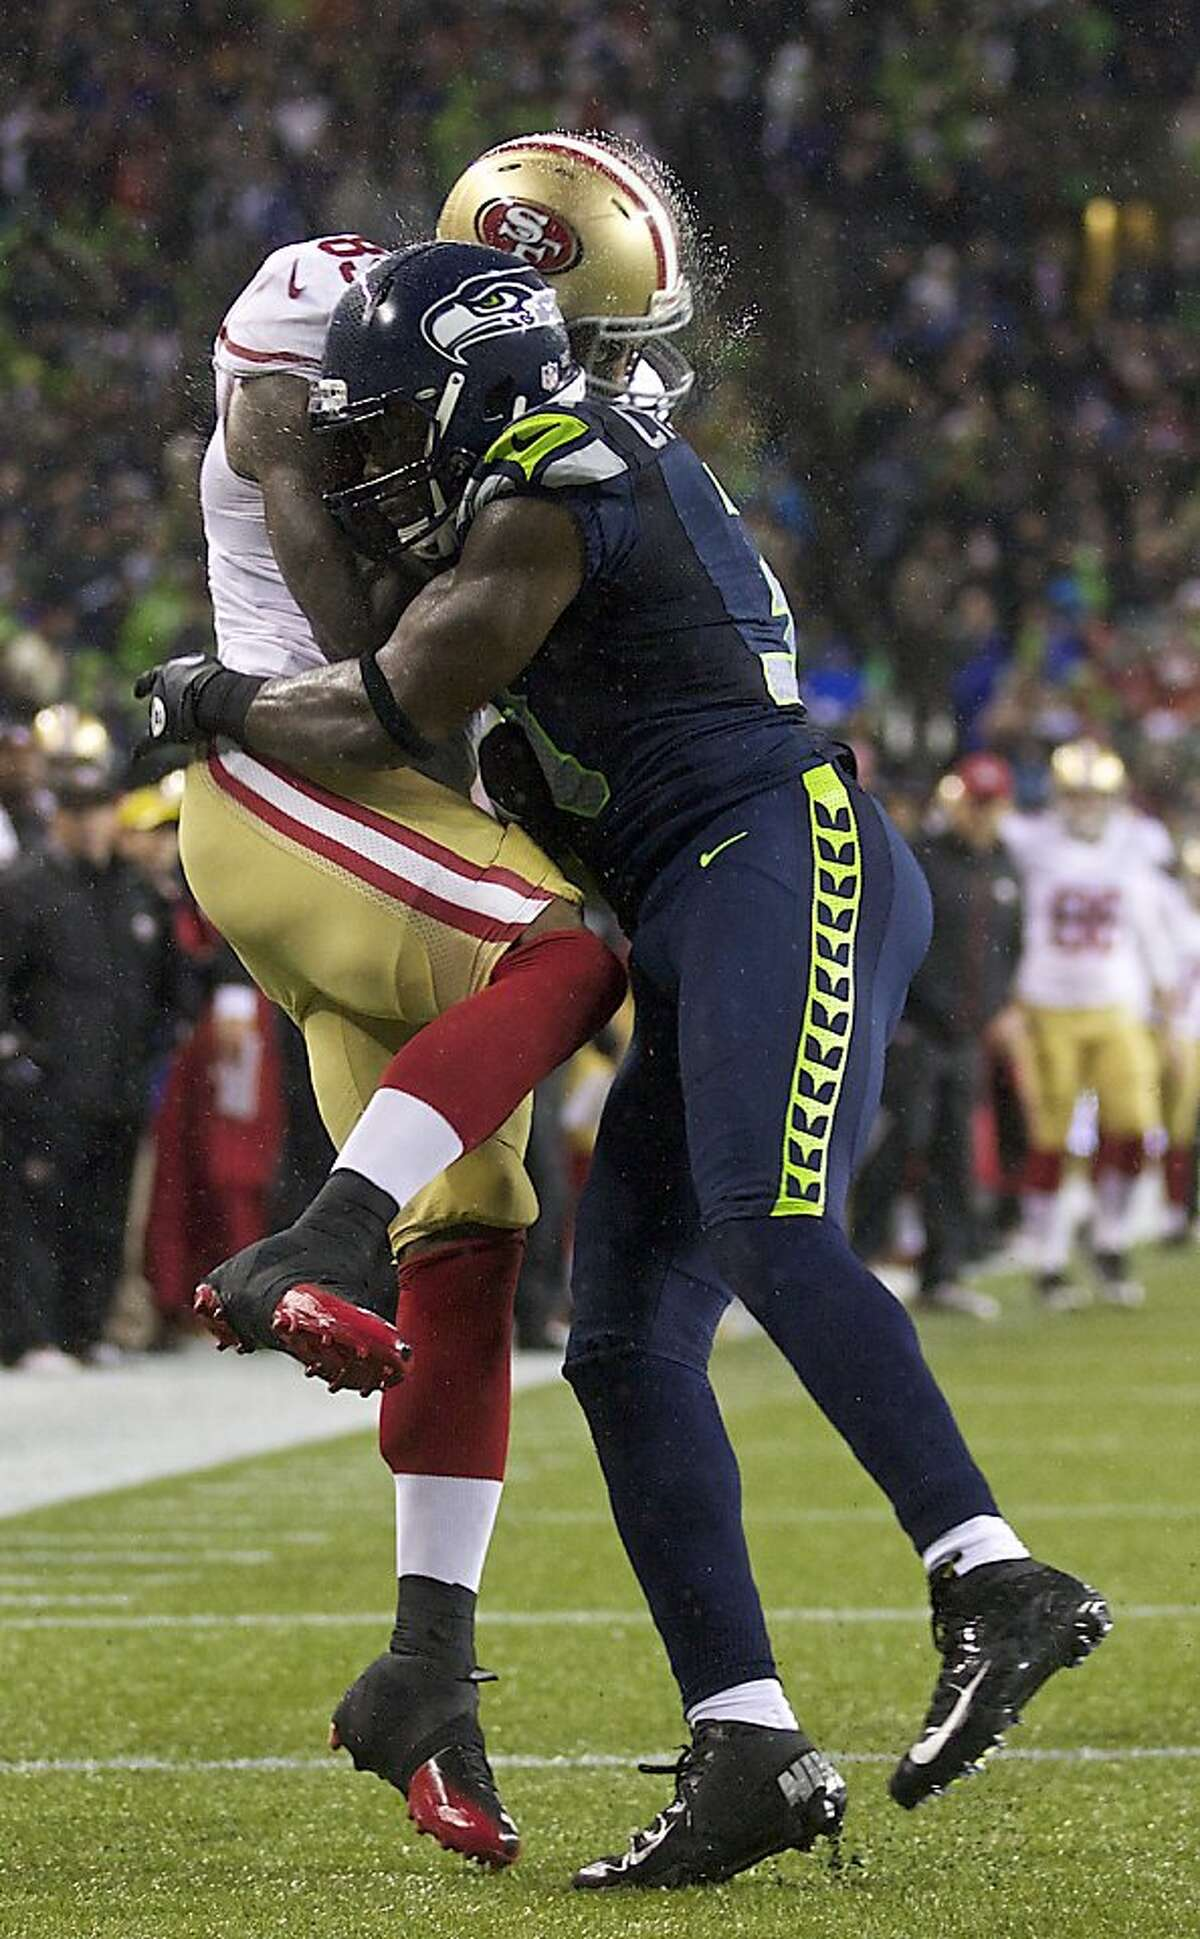 SEATTLE, WA - DECEMBER 23: Kam Chancellor #31 of the Seattle Seahawks hits Vernon Davis #85 of the San Francisco 49ers during a game at CenturyLink Field on December 23, 2012 in Seattle, Washington. (Photo by Stephen Brashear/Getty Images)